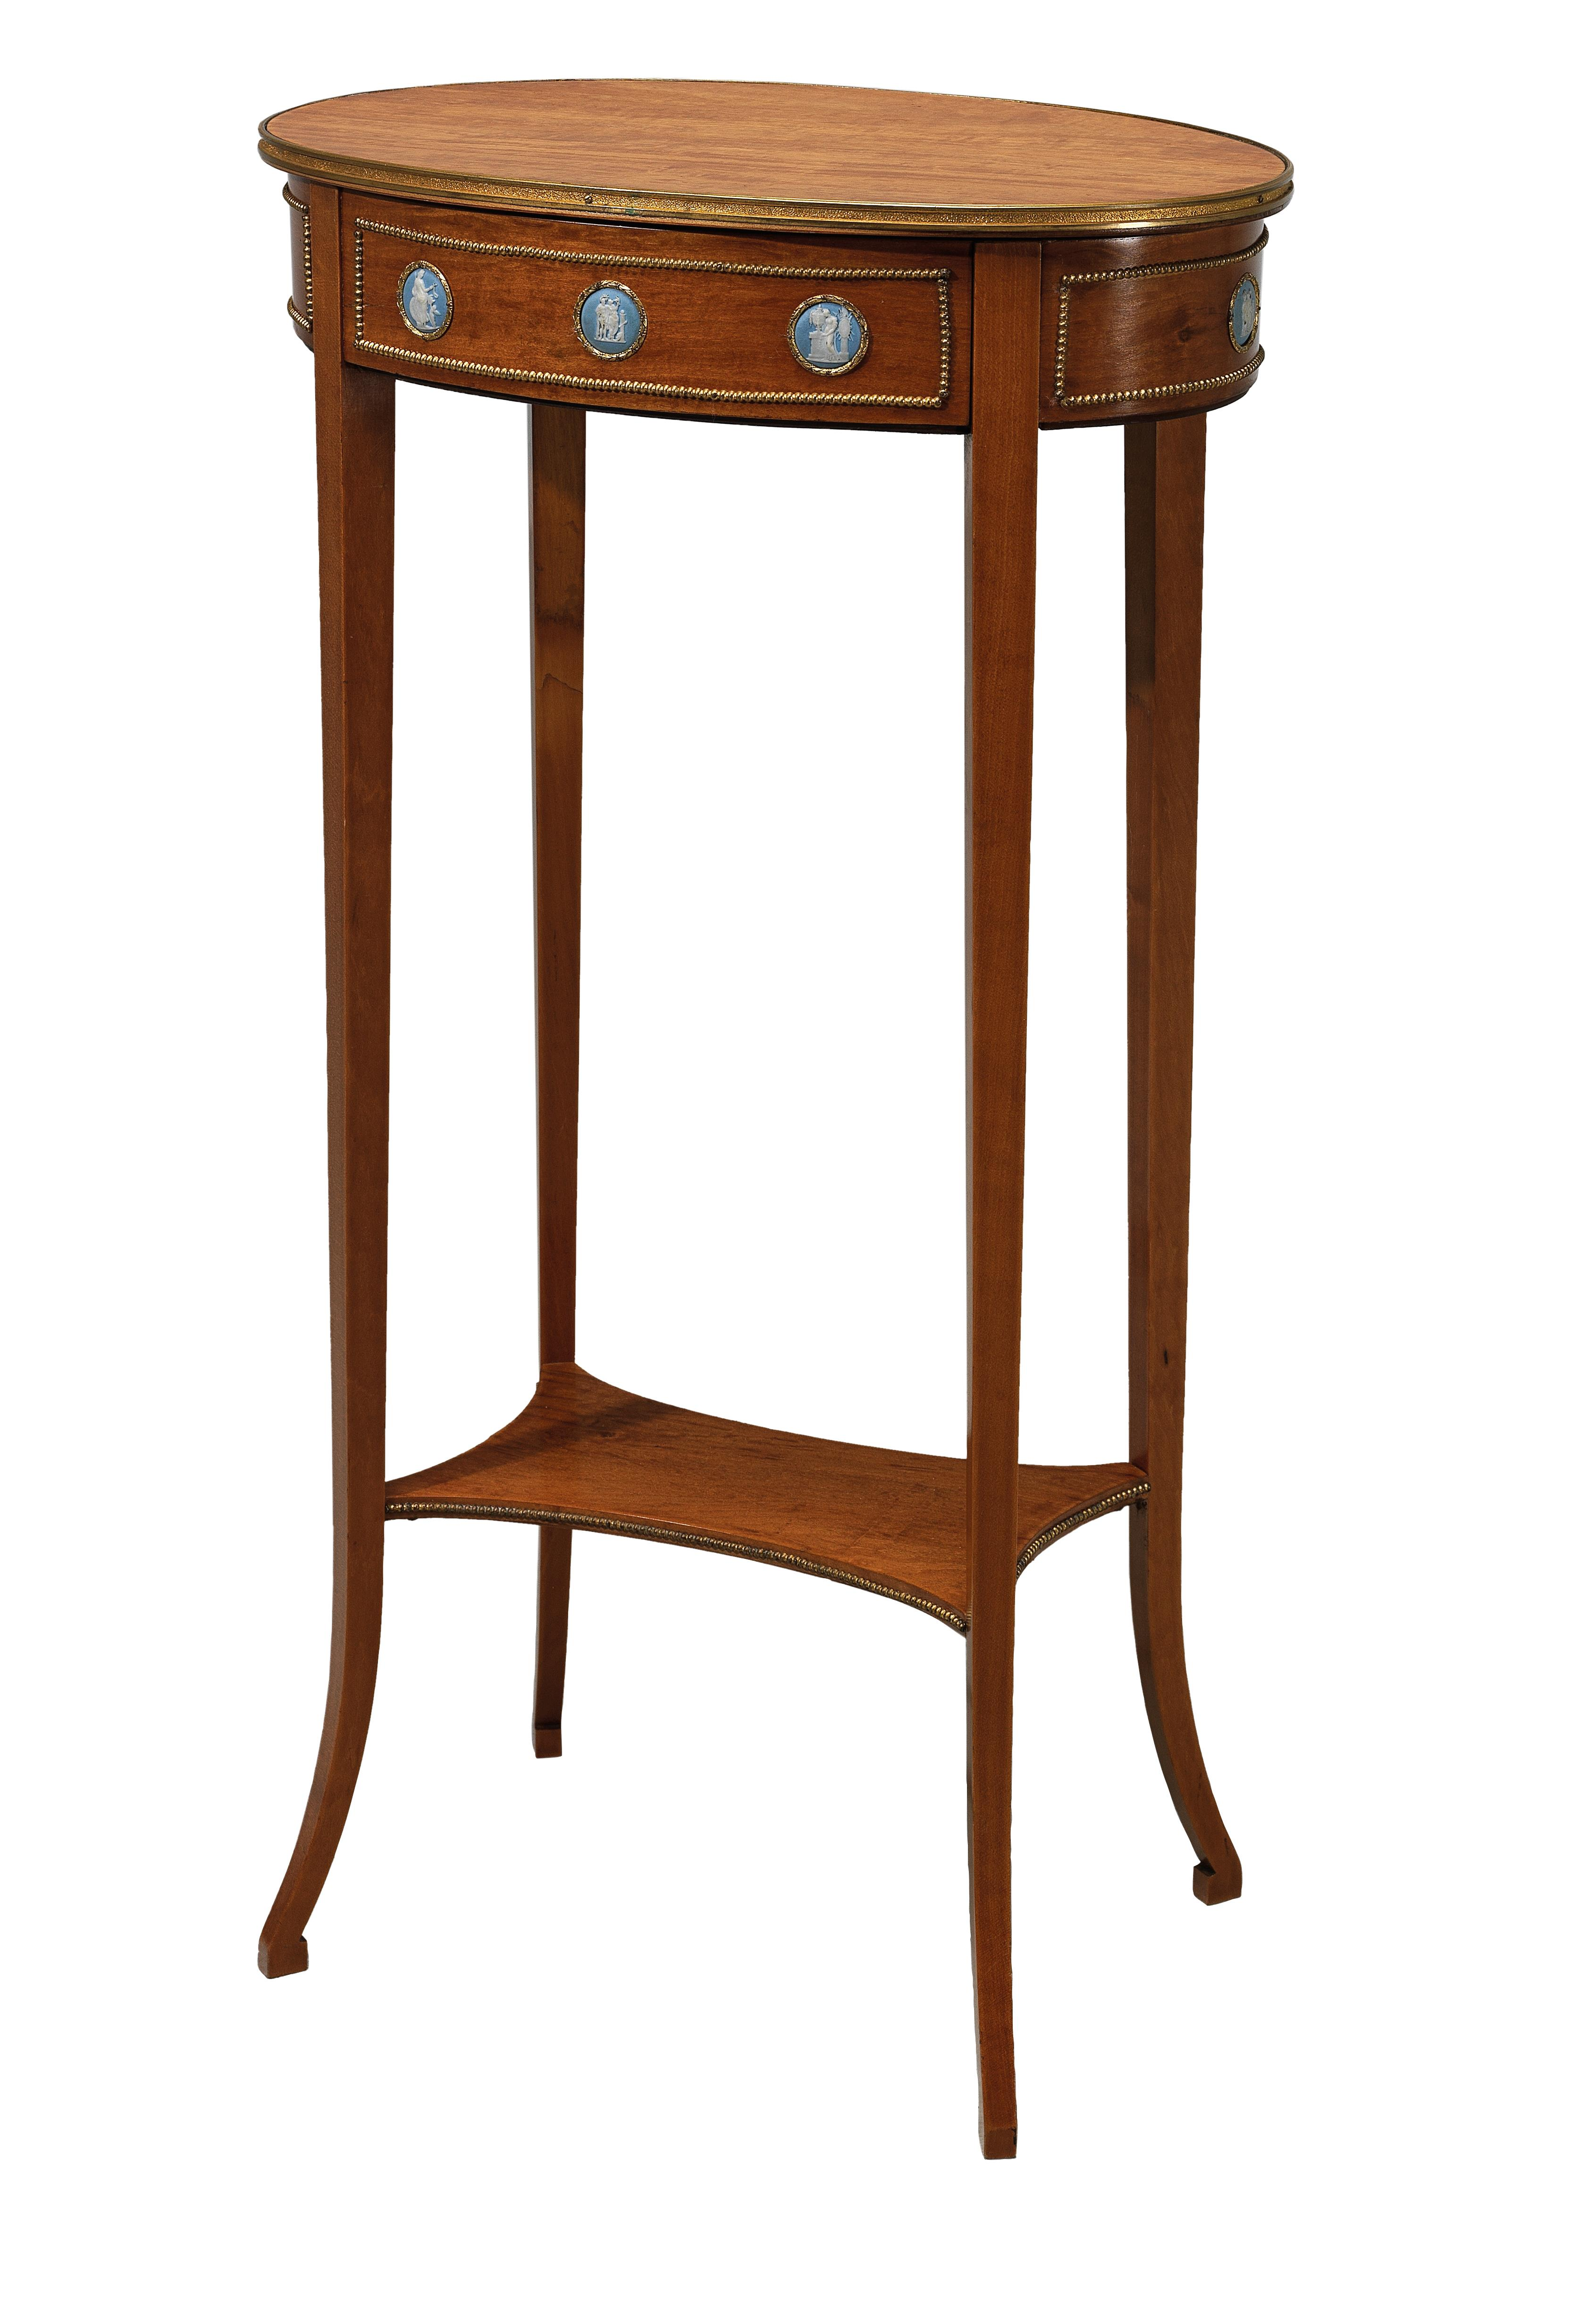 A Dainty Salon Table - Furniture, Porcelain, Sculpture and Works of